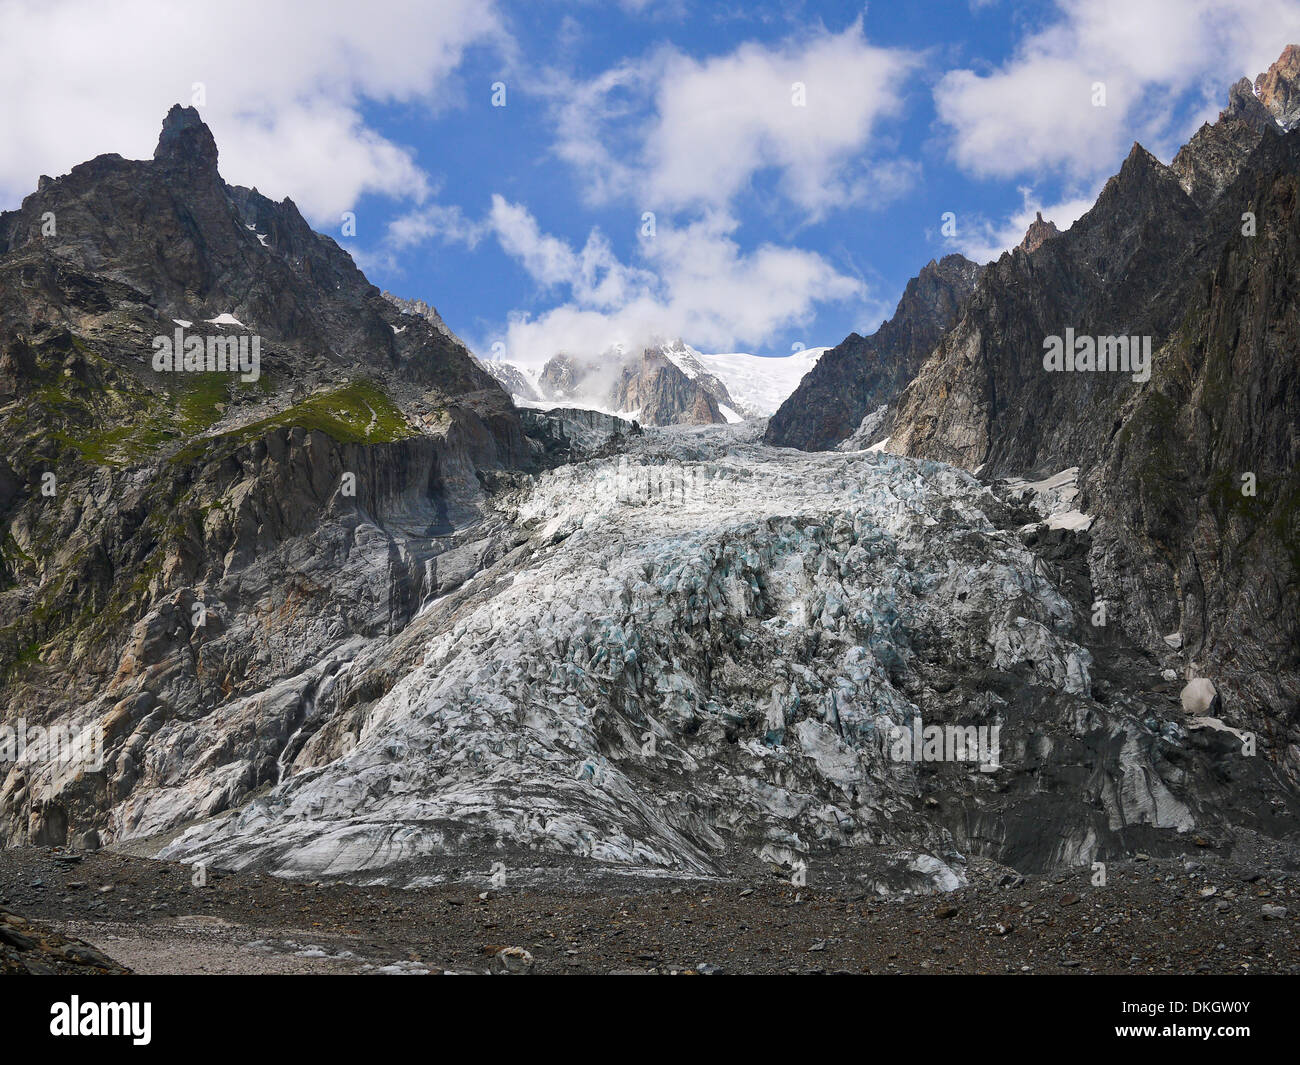 Glacier in the Mount Blanc complex, Val Veny, Alps Mountains - Stock Image